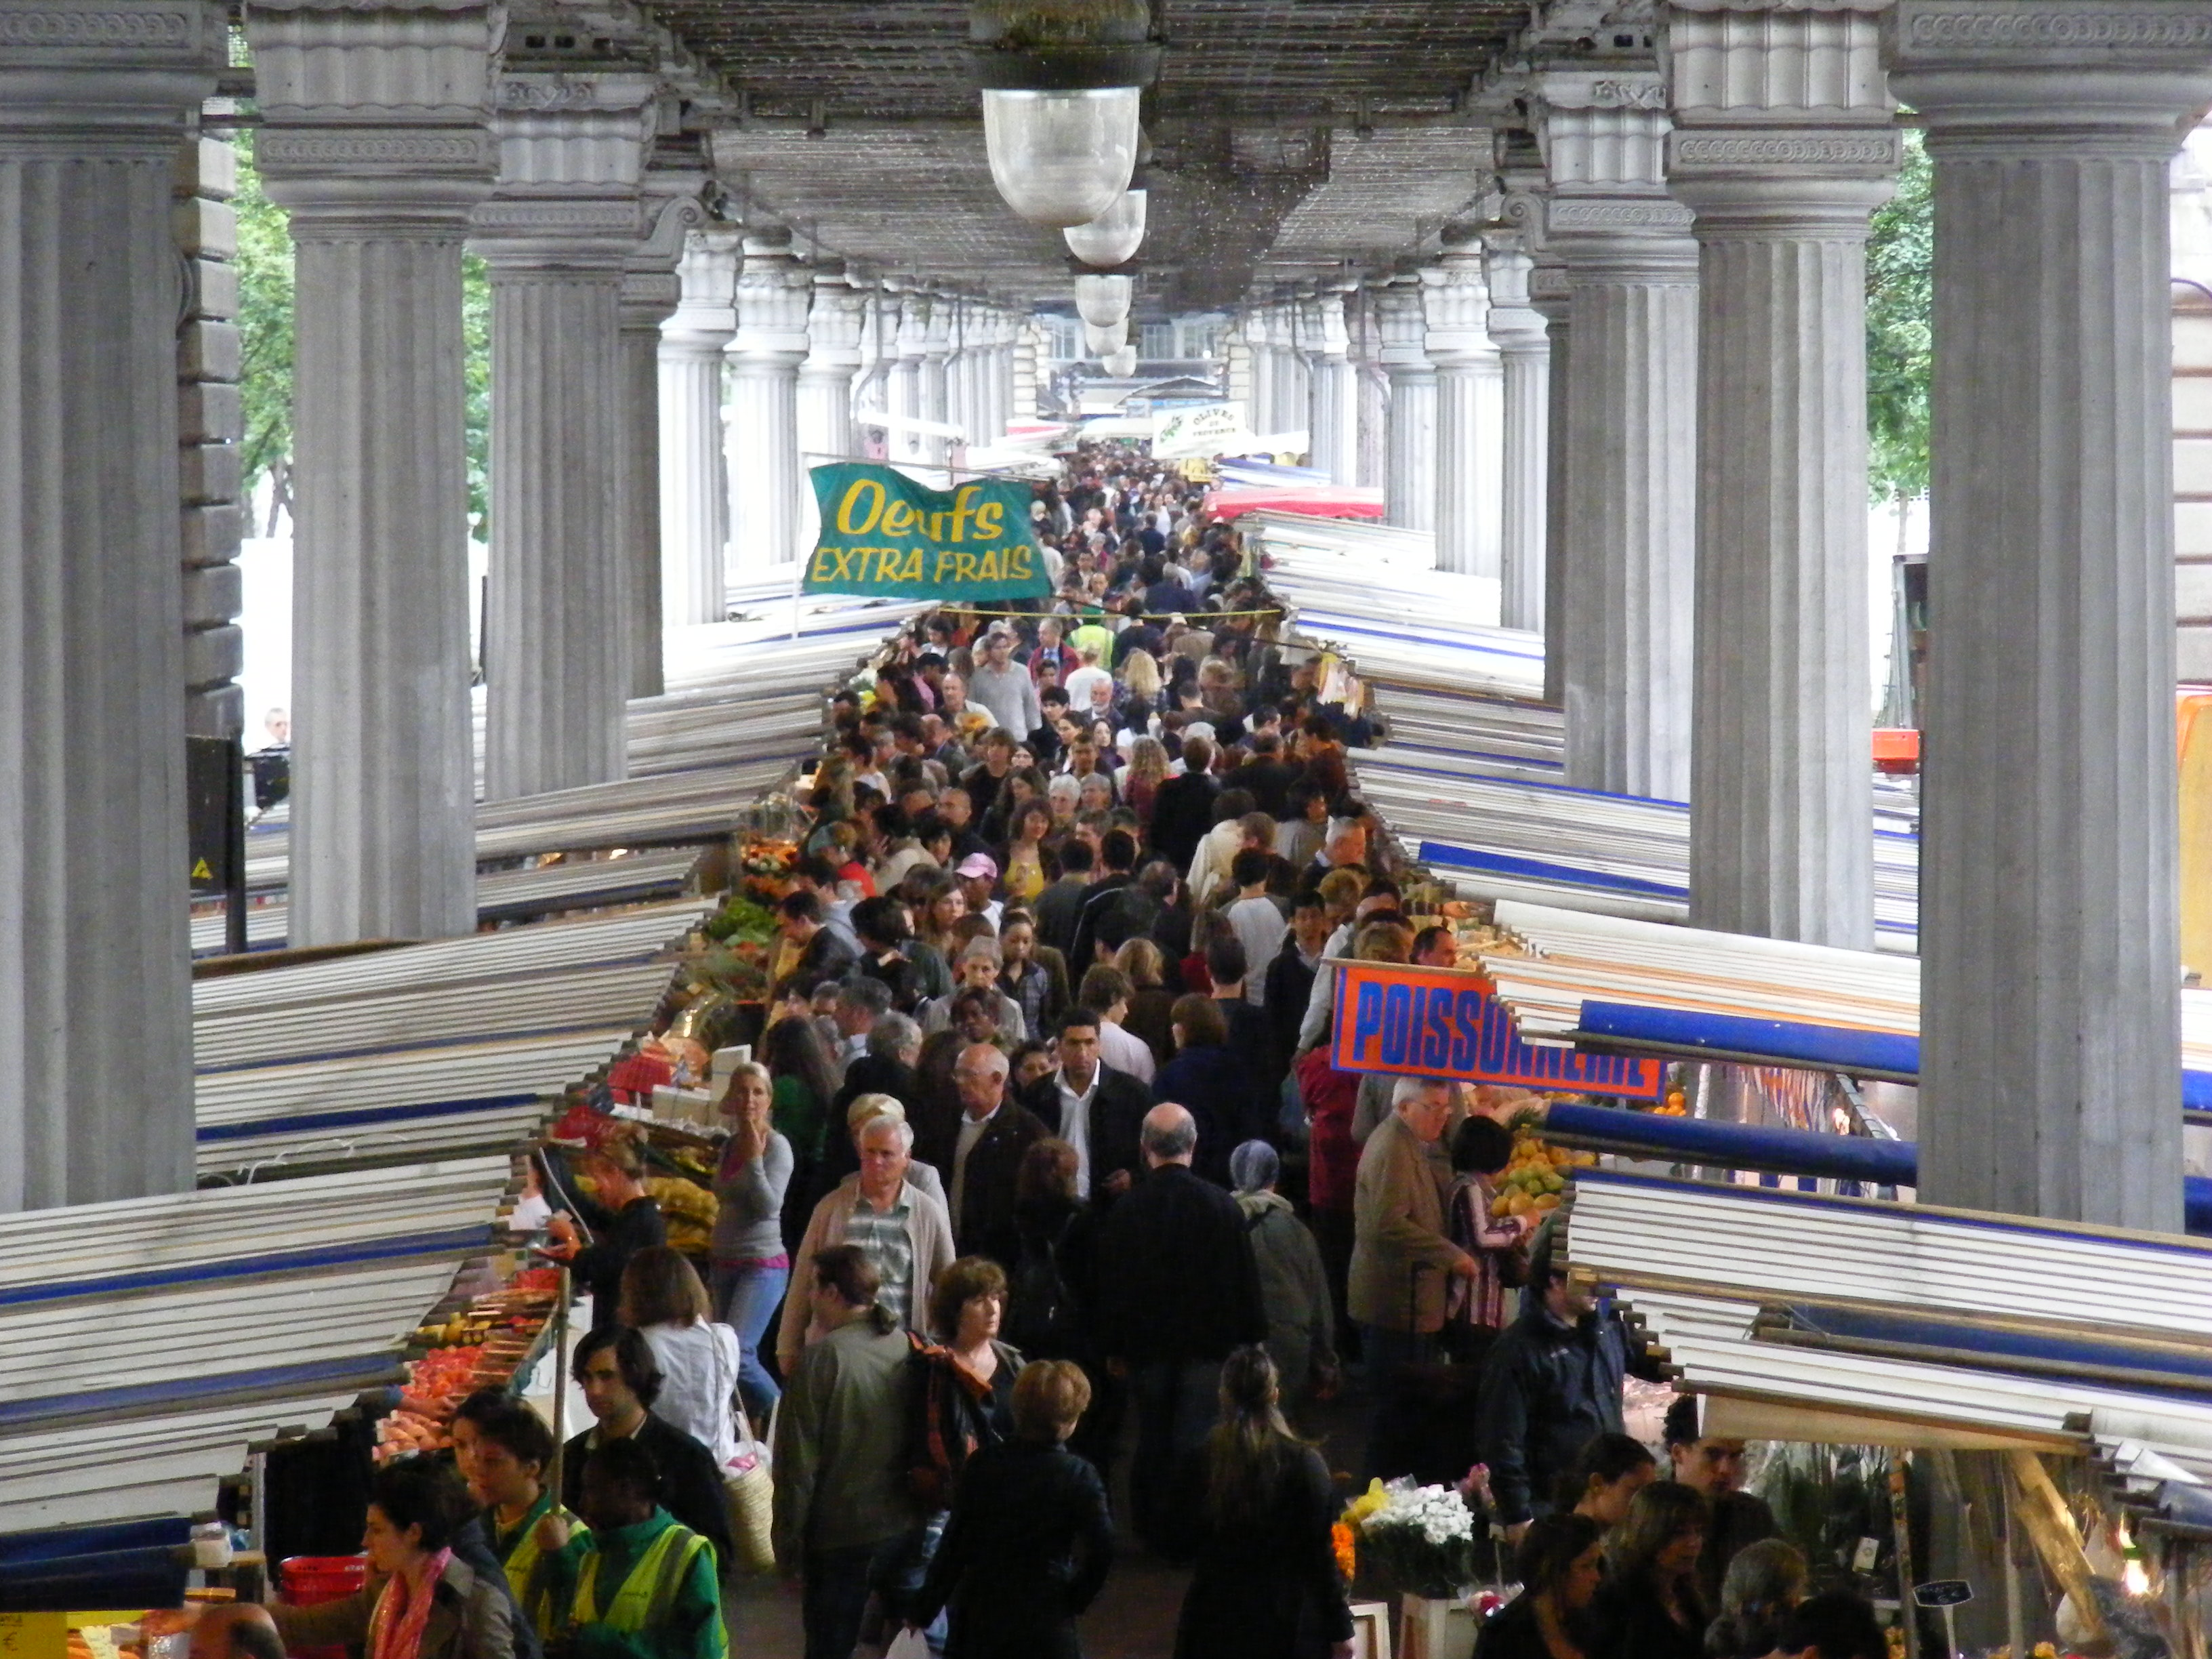 File a public market in paris march de grenelle located in boulevard grenell - Marche mercredi paris ...